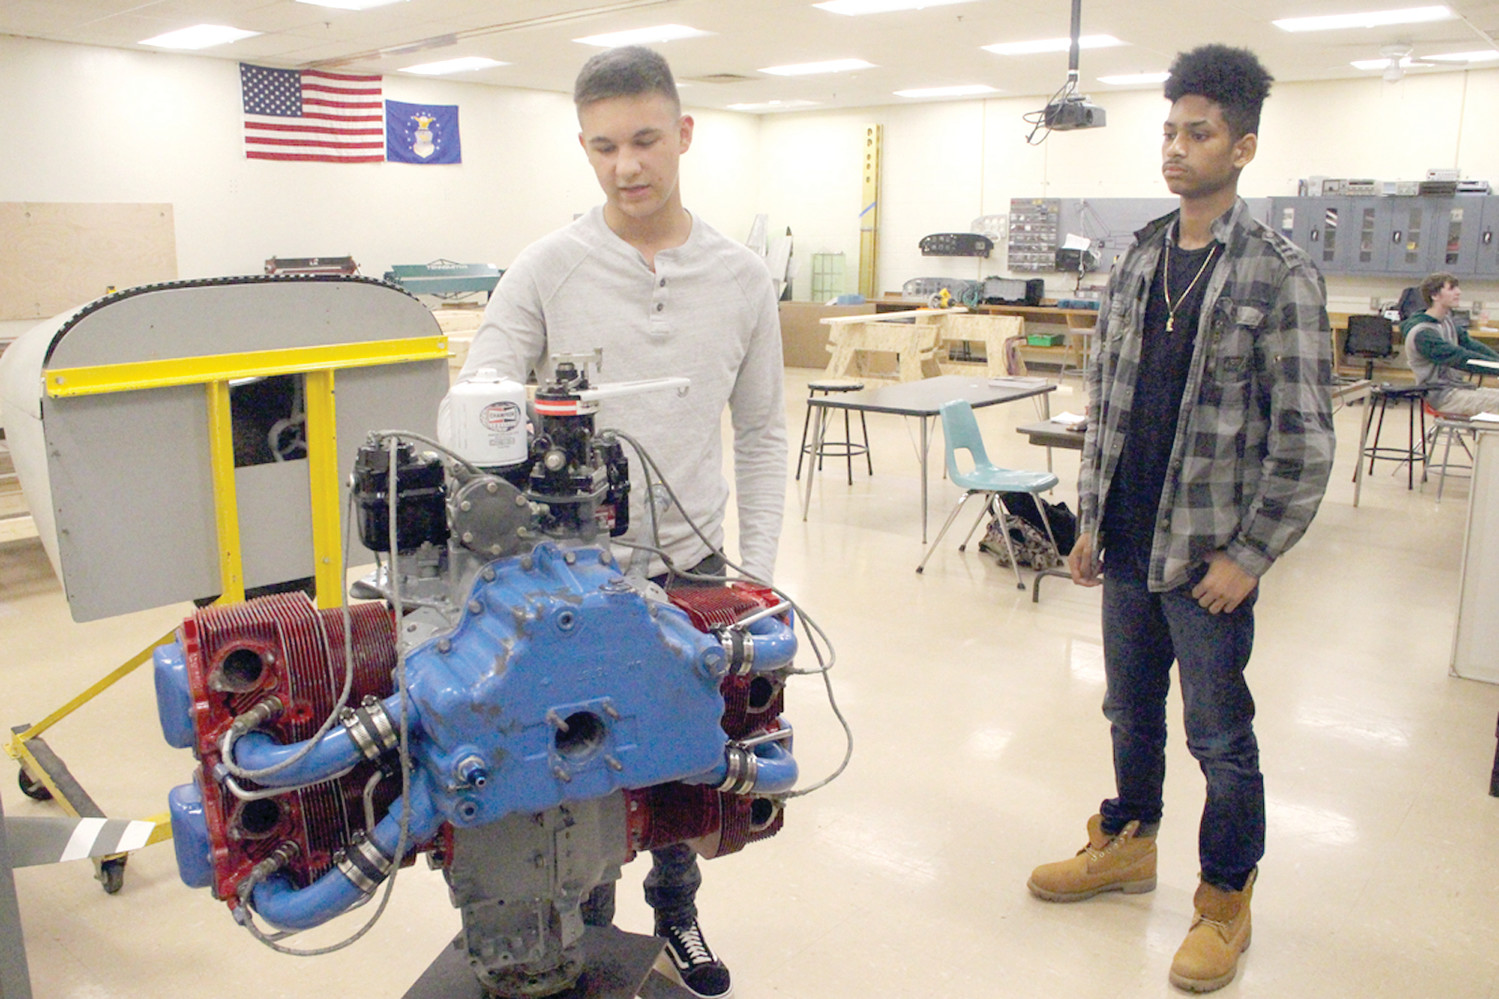 HE KNOWS HIS ENGINE: Sophomore Andrew Clark points out components to the aircraft engine in the classroom as Nick Sevrino looks on.